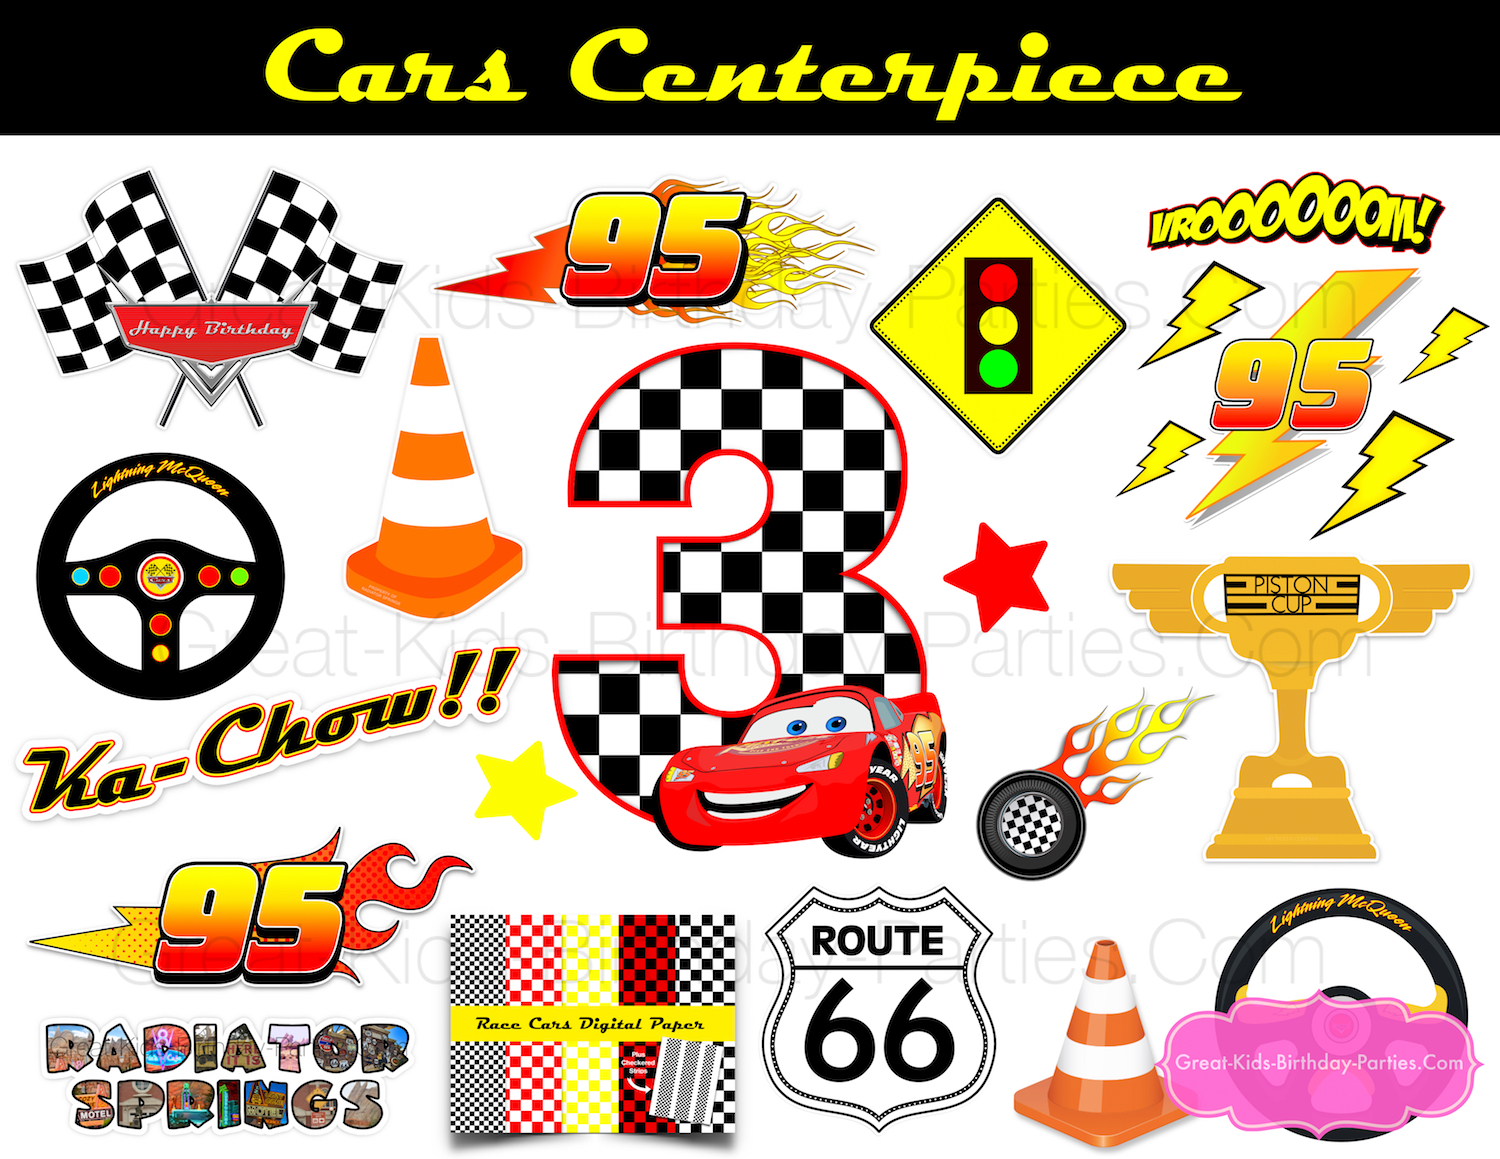 Plenty Of Images To Make One Centerpiece Or Different Centerpieces Get Details For This Lightning McQueen Party Printable At Our Etsy Shoppe